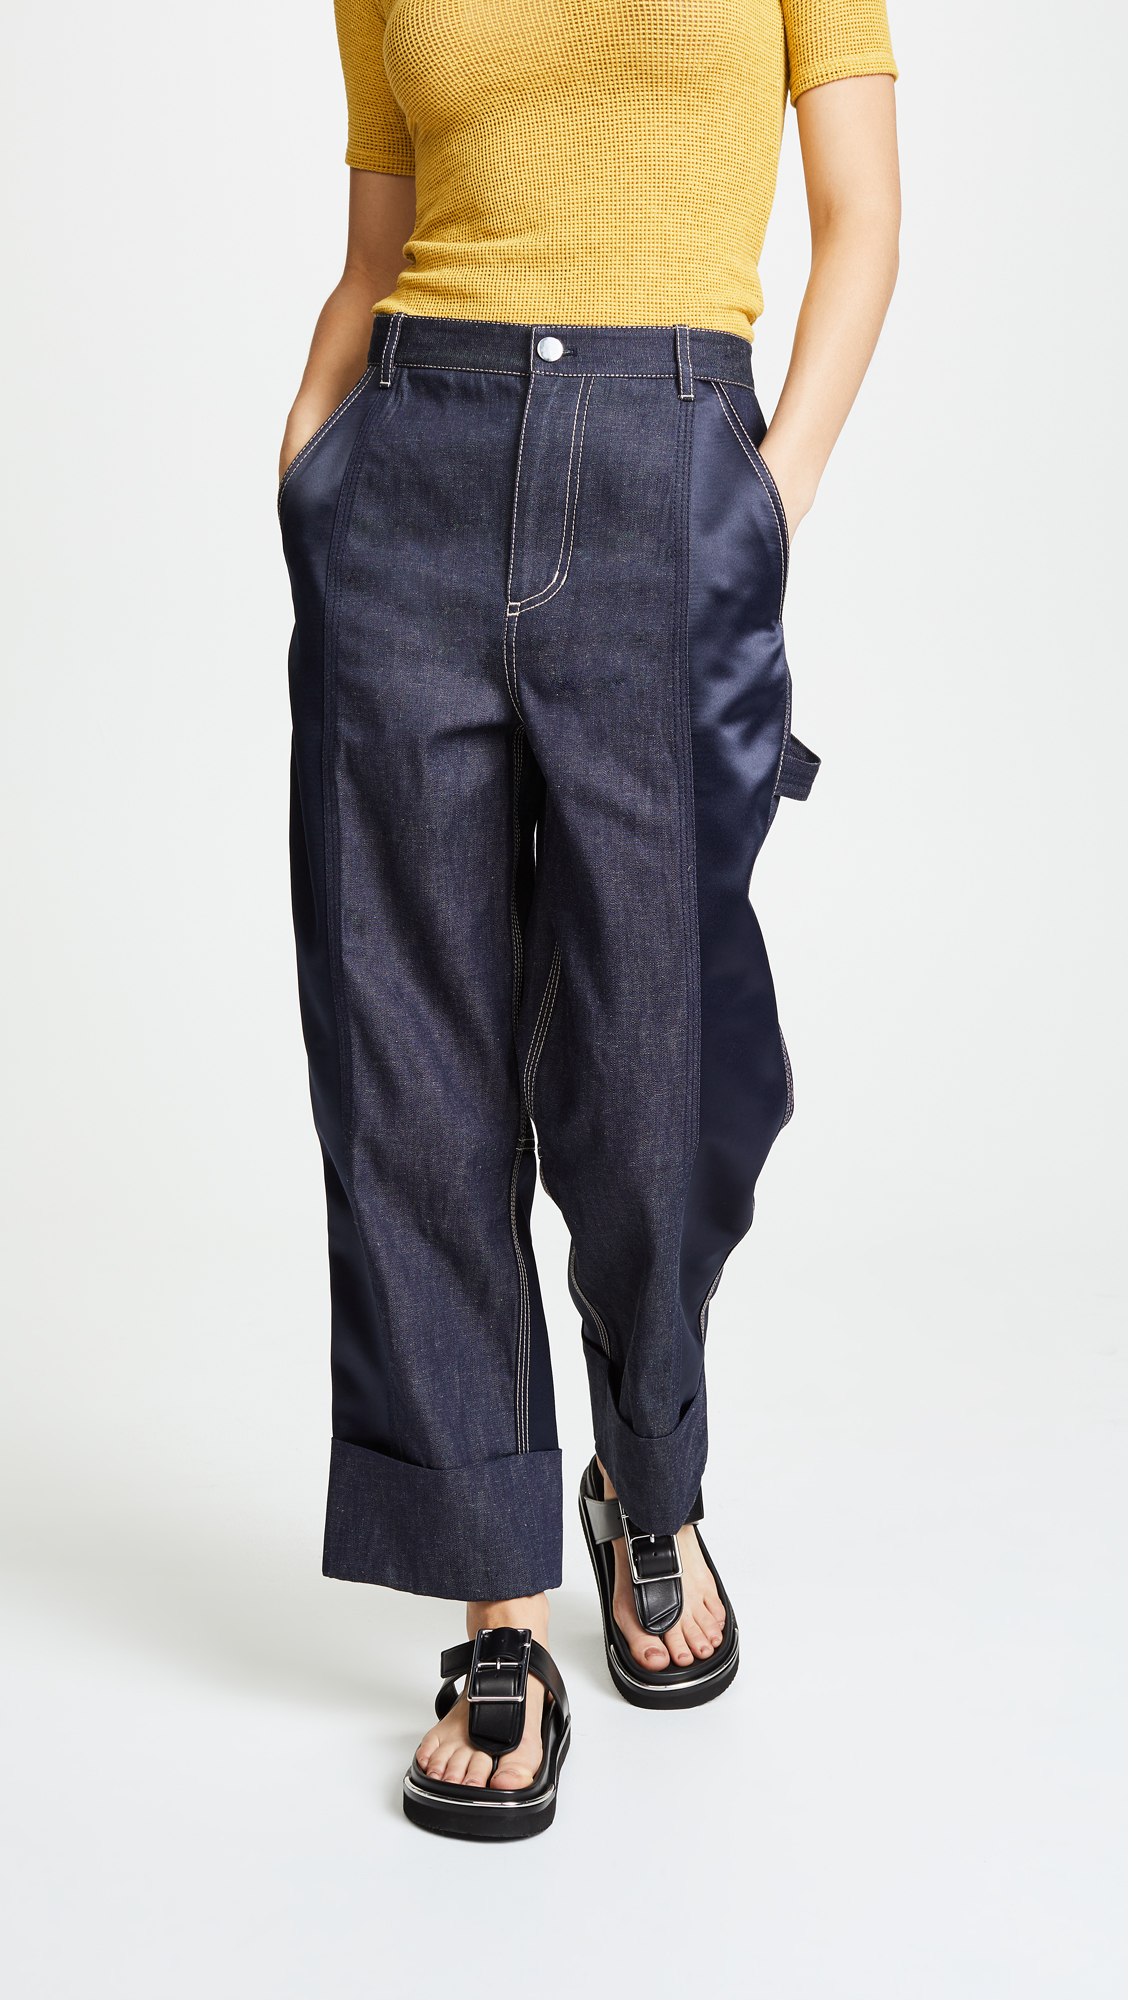 carpenter pants, cargo jeans, utility jeans, utlilty pants, 3.1 phillip lim